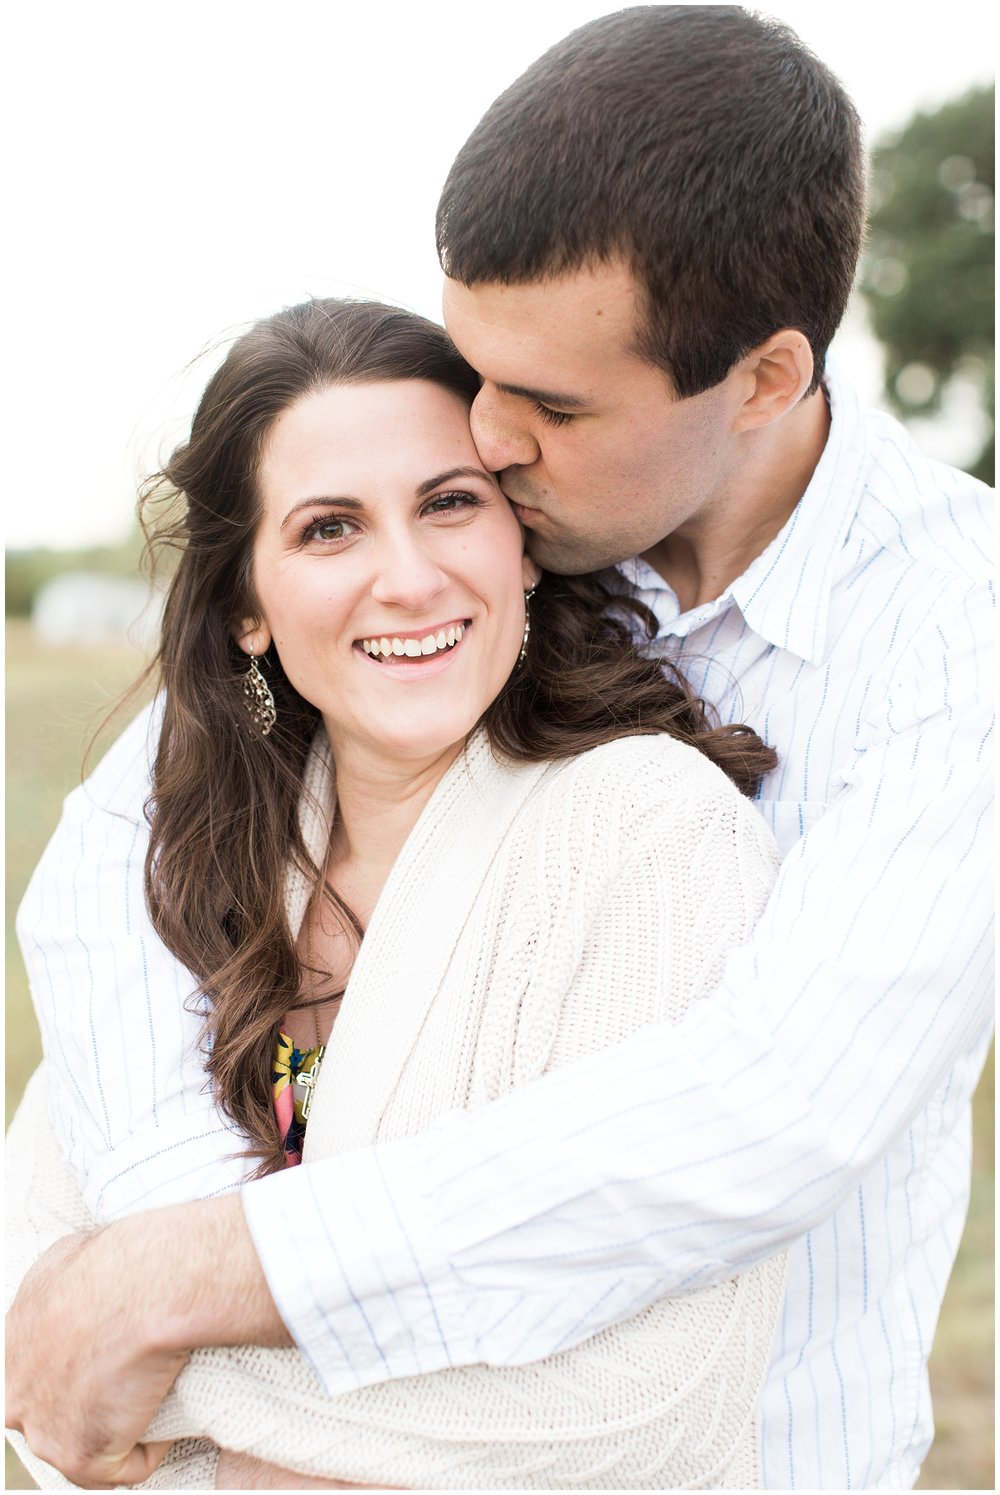 Old_Baylor_Park_Engagement_Session_0006.jpg